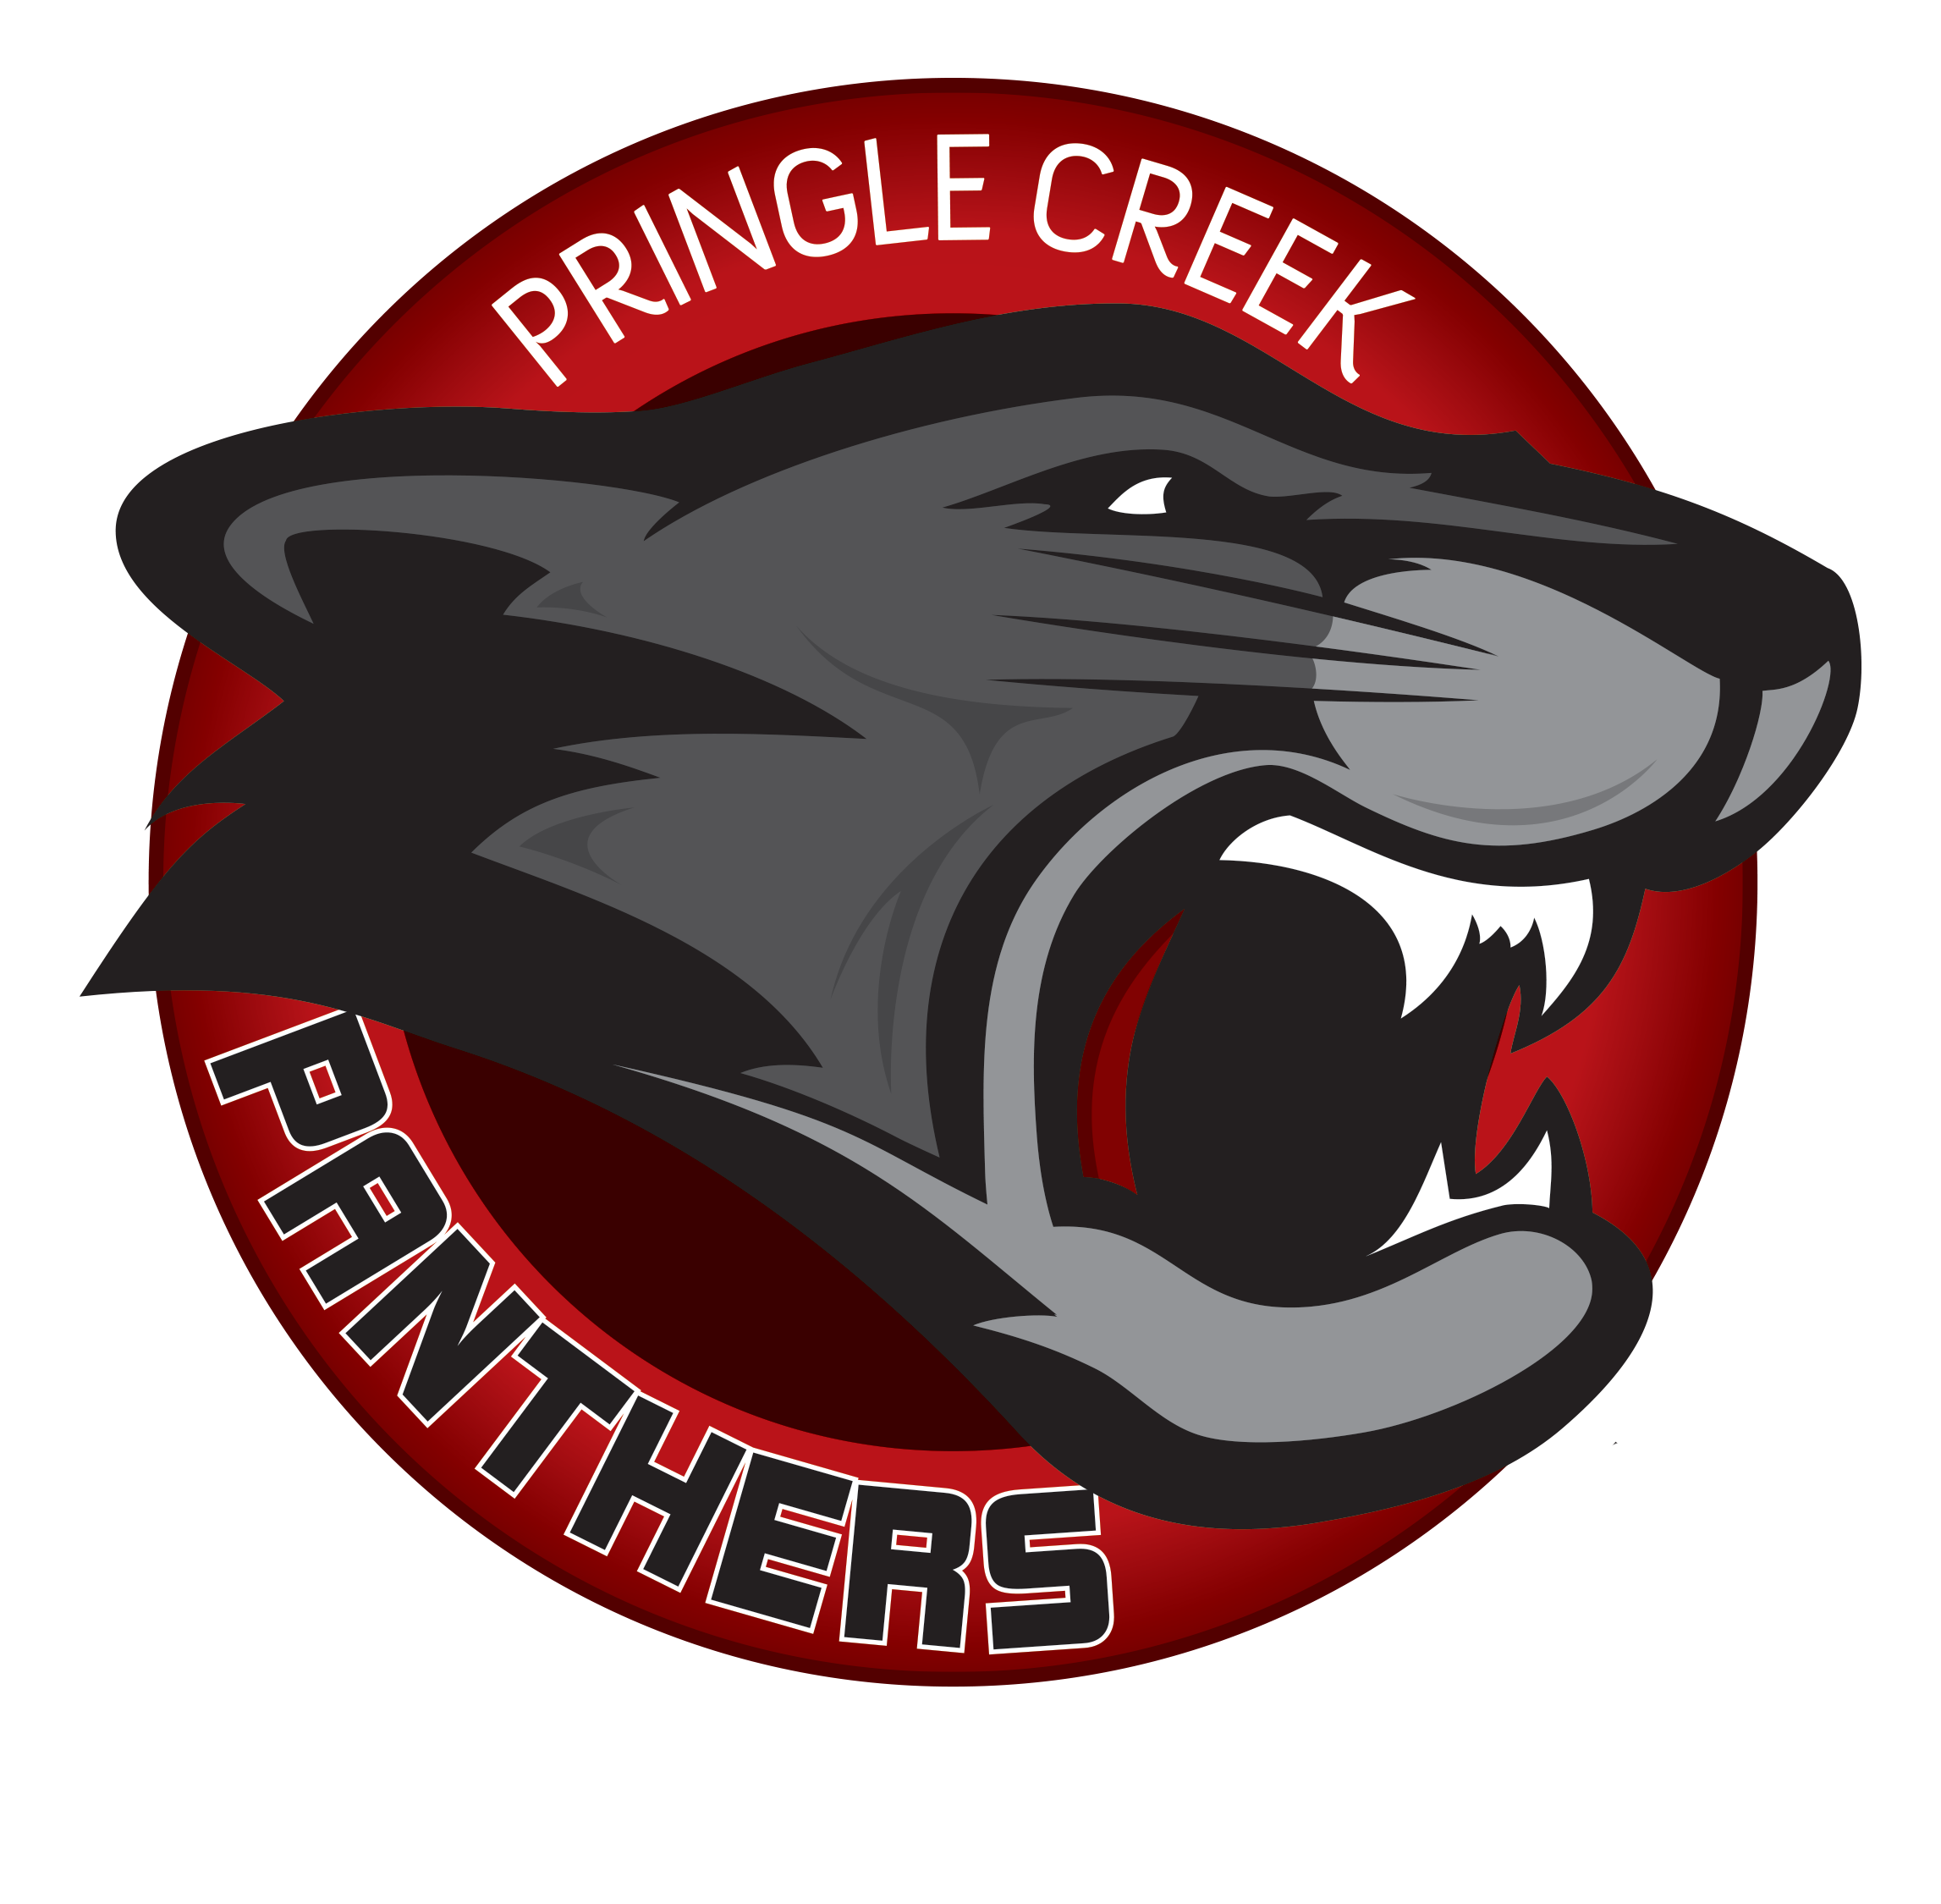 Pringle Creek Public School logo